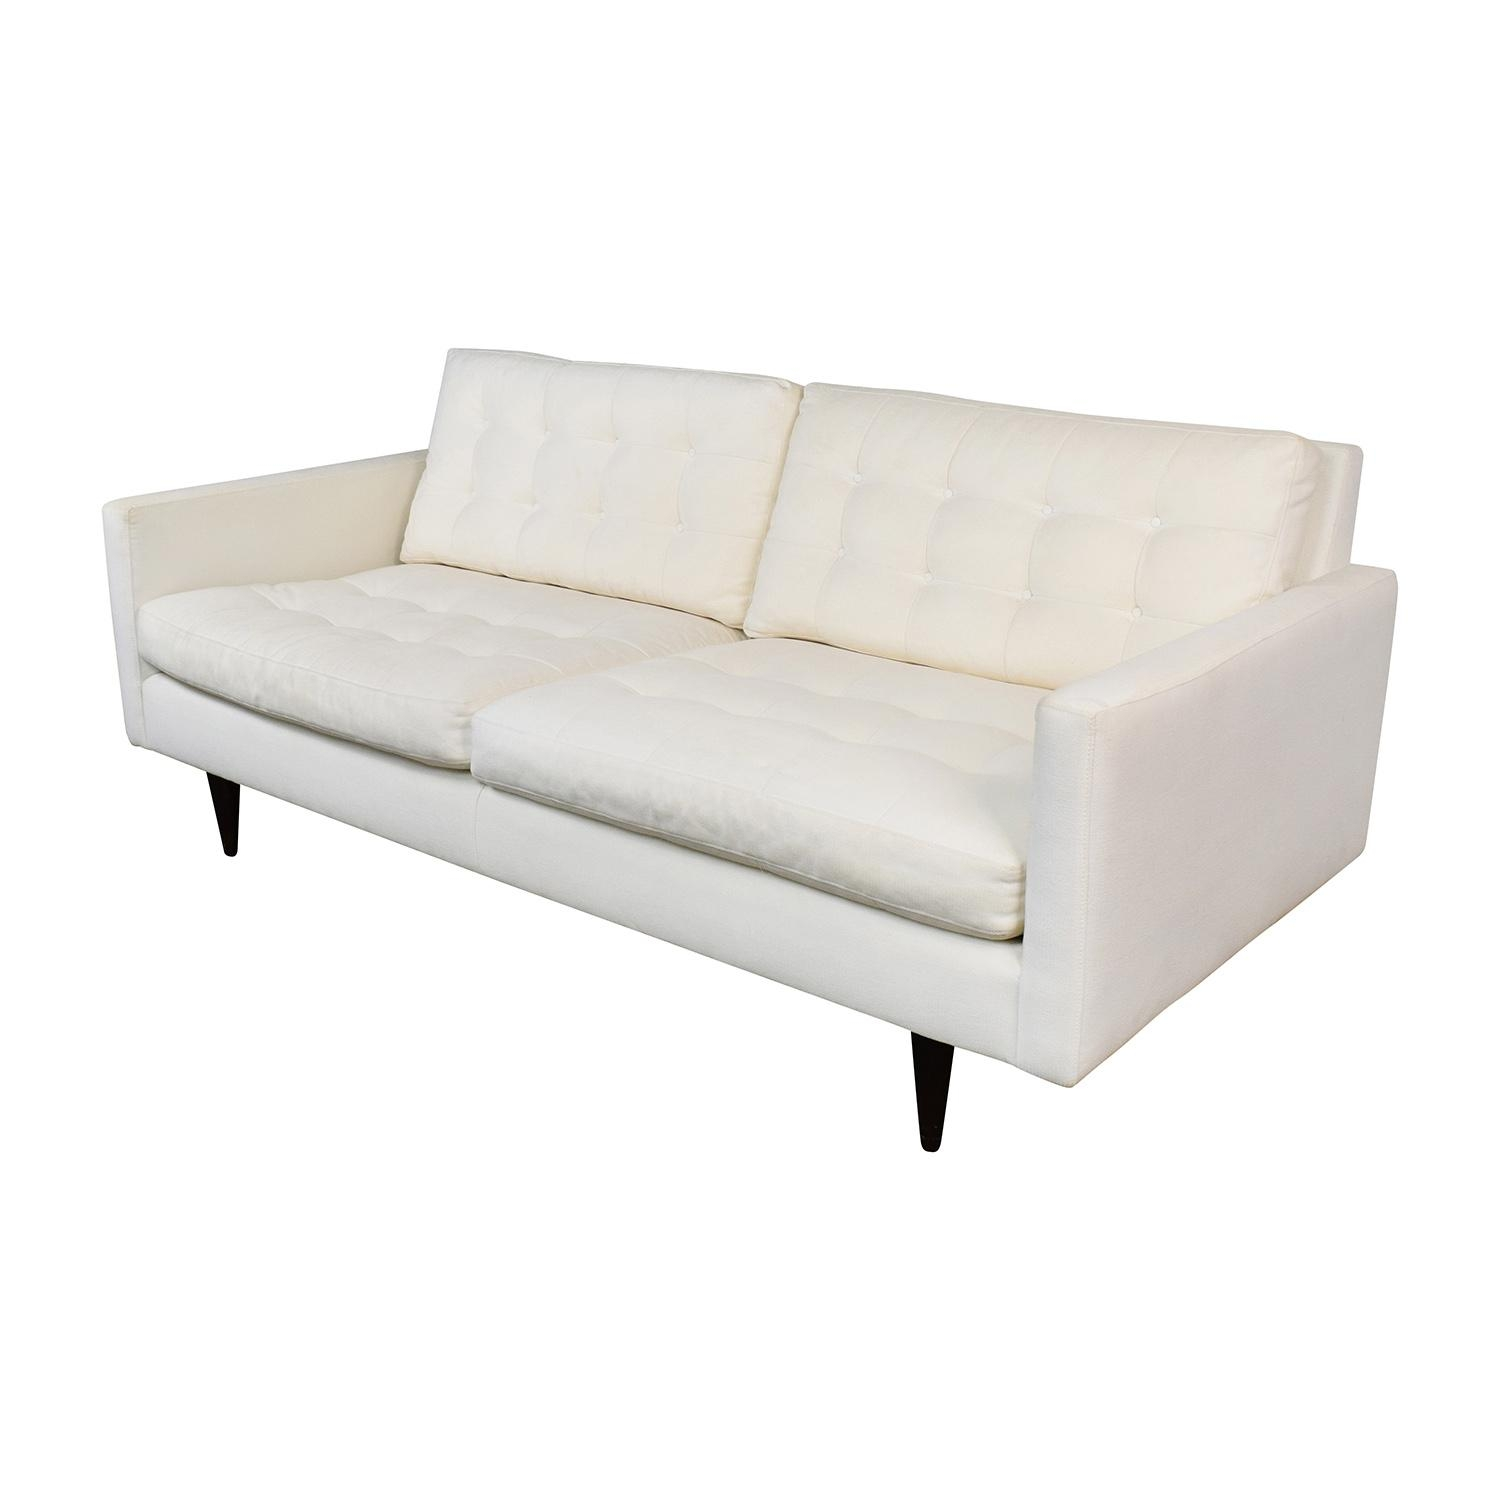 73% Off – Crate And Barrel Crate & Barrel White Twill Tufted Sofa Regarding Crate And Barrel Futon Sofas (Image 5 of 20)